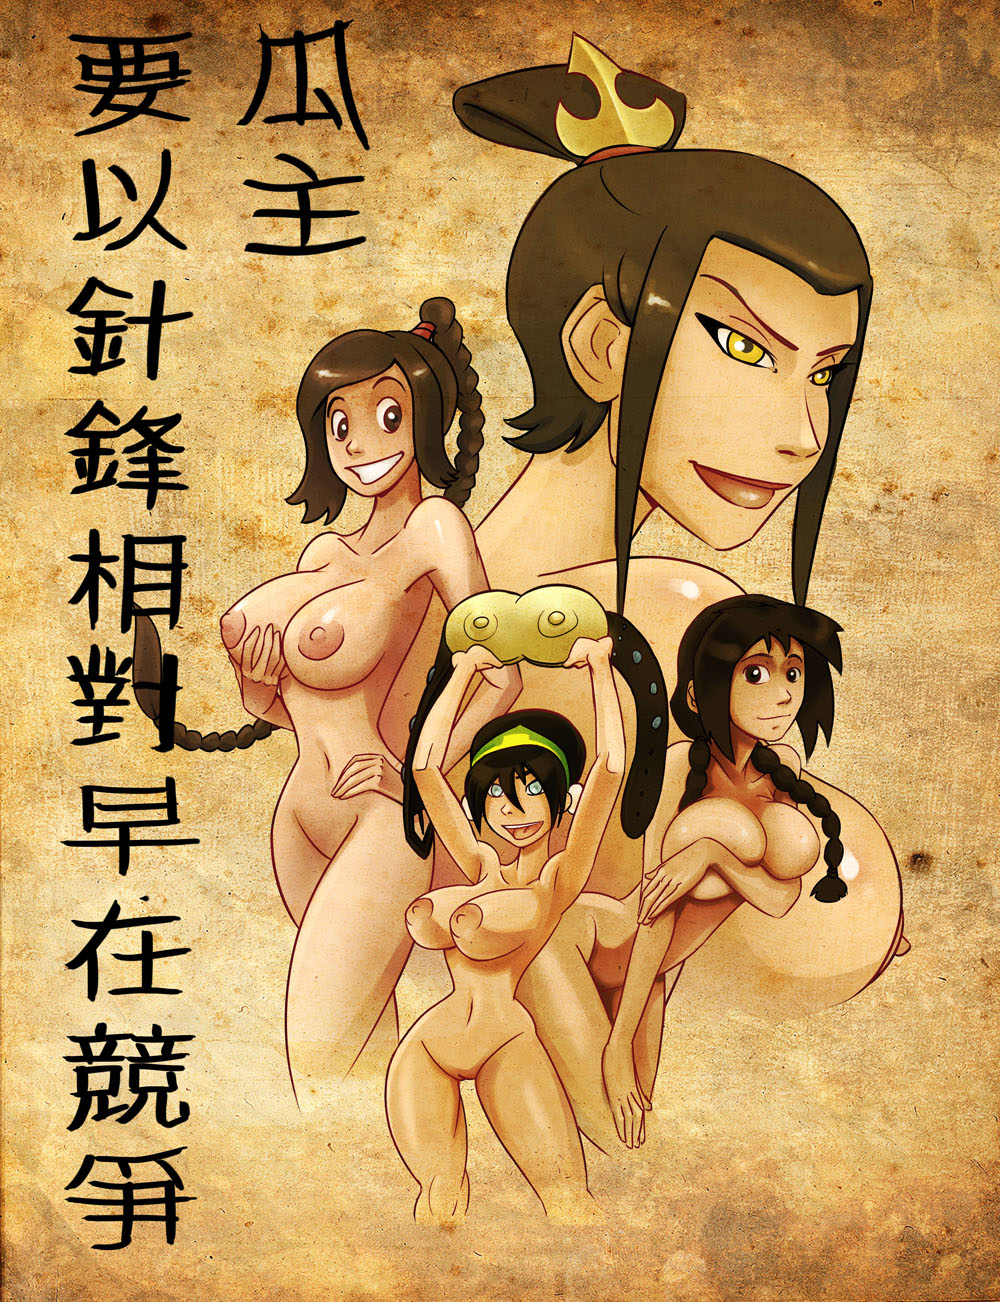 airbender the jin last avatar Detective girl of steam city